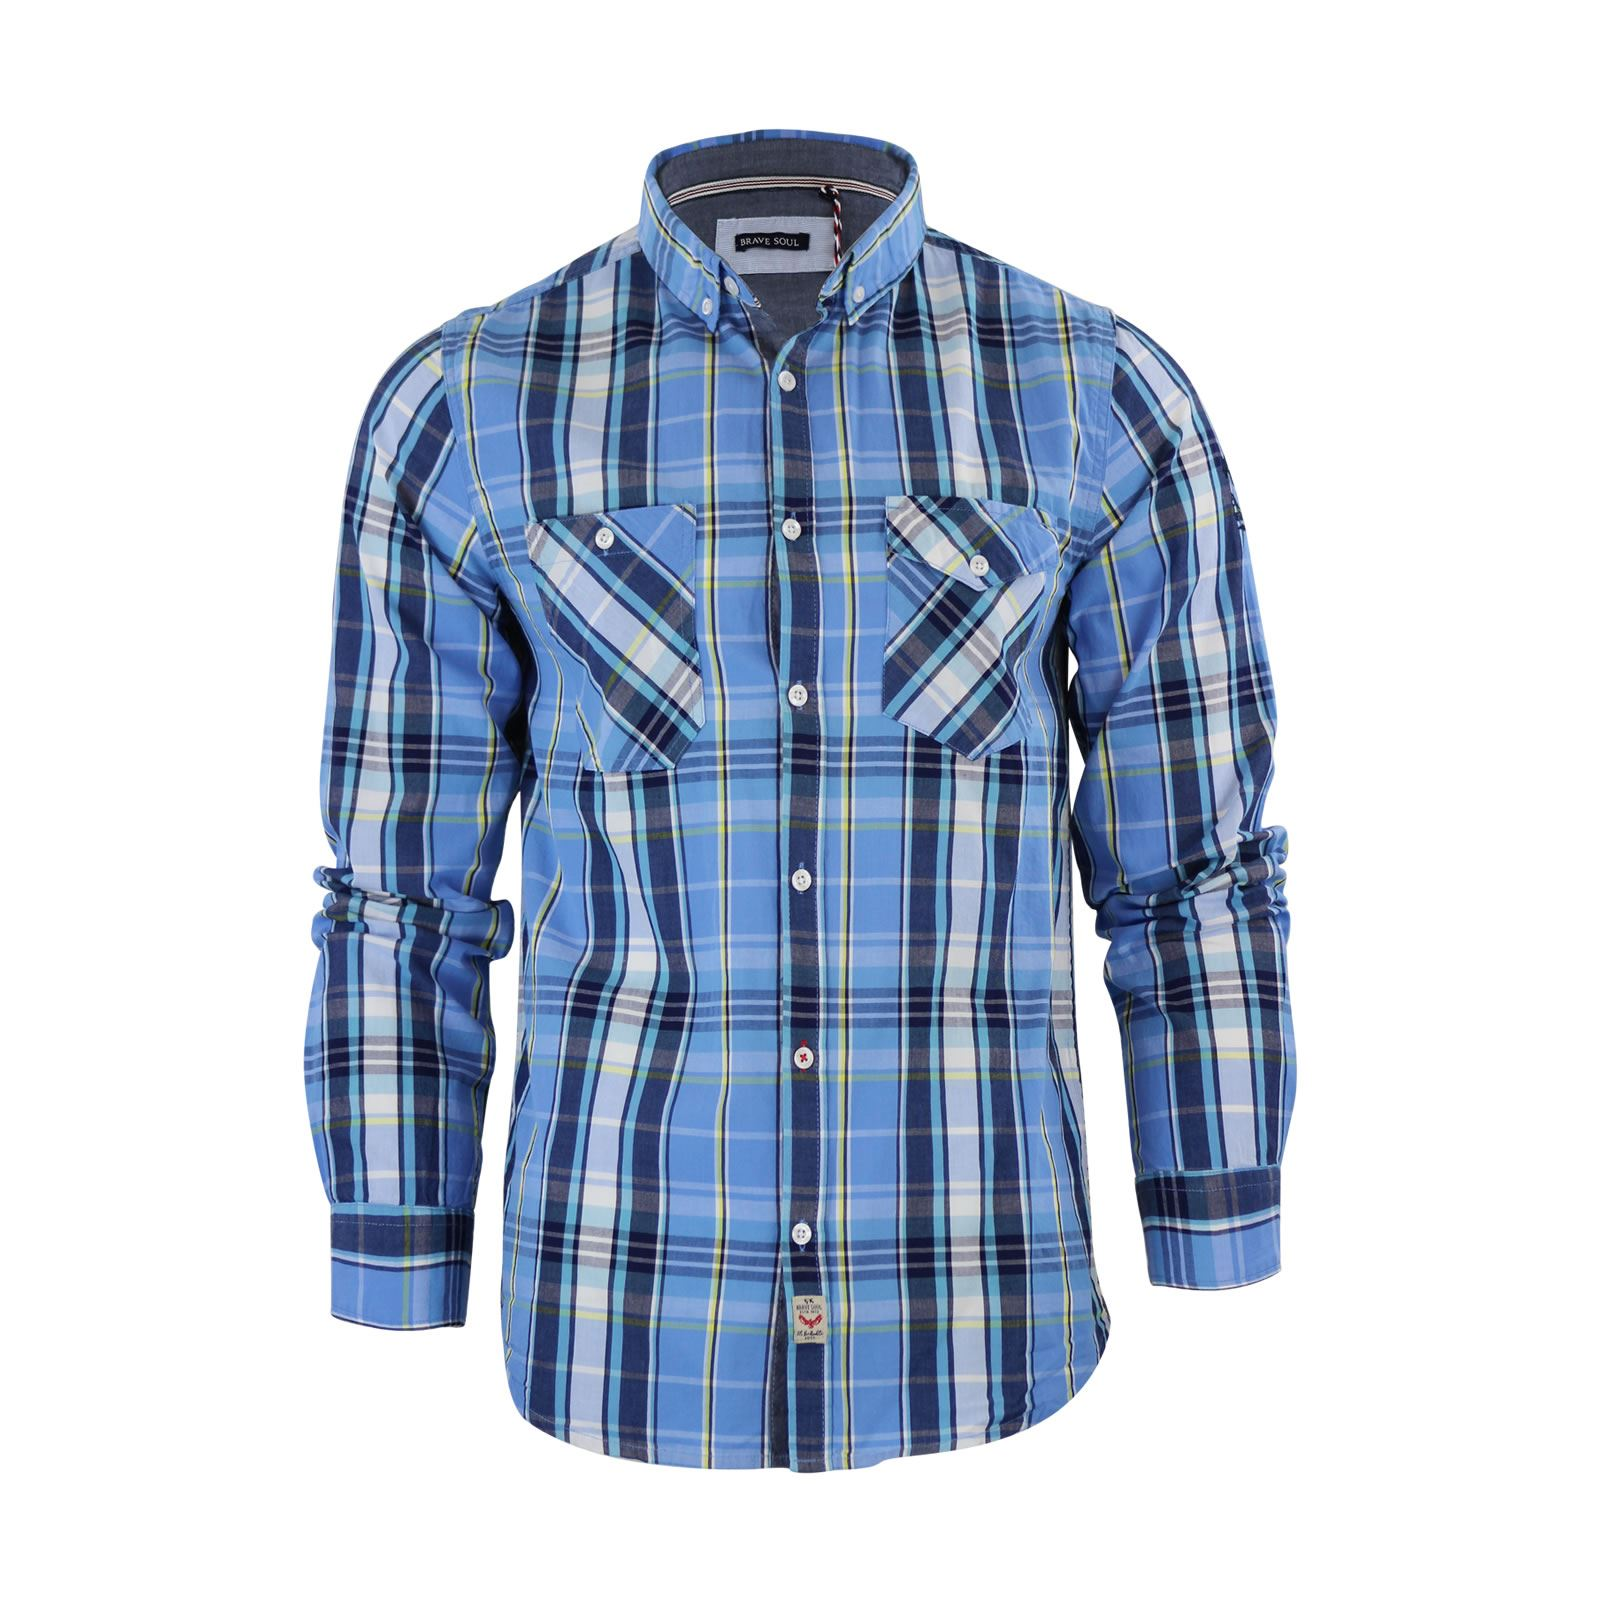 Brave-Soul-Mens-Check-Shirt-Flannel-Brushed-Cotton-Long-Sleeve-Casual-Top thumbnail 6